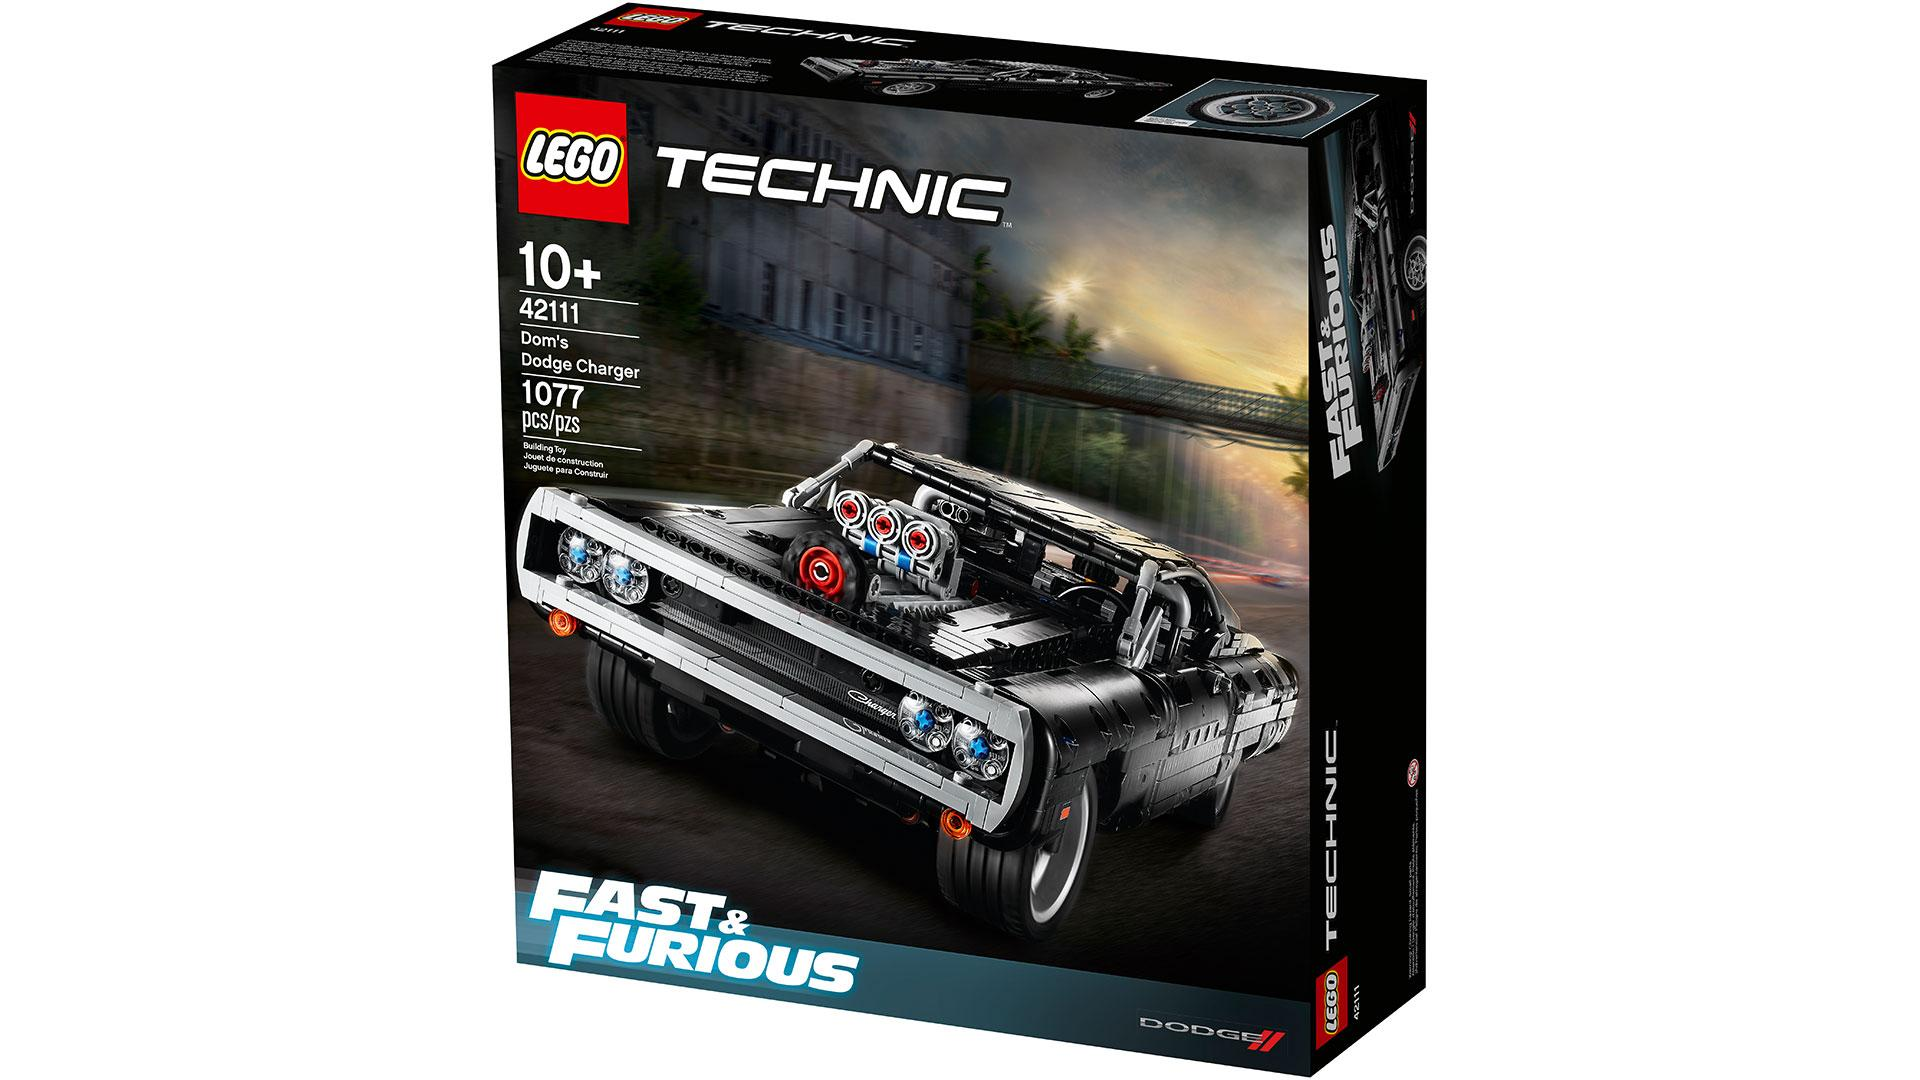 Doos Lego Dodge Charger uit The Fast and the Furious